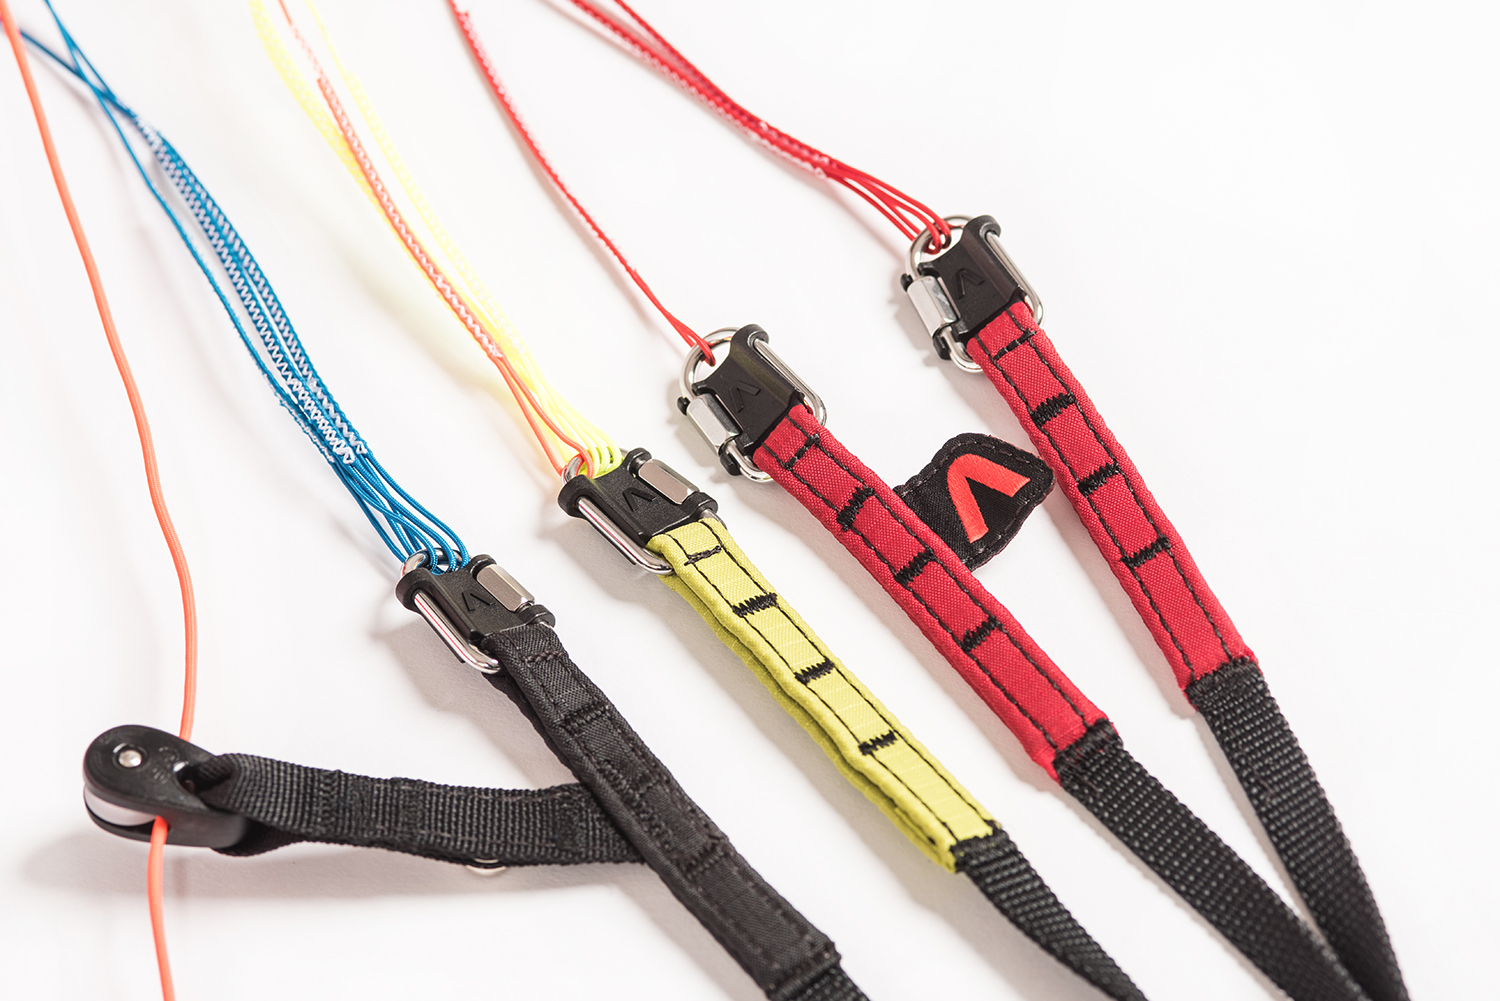 Tequila Skywalk Paragliders Rib Harness Clip Wiring Tequila5 Riser